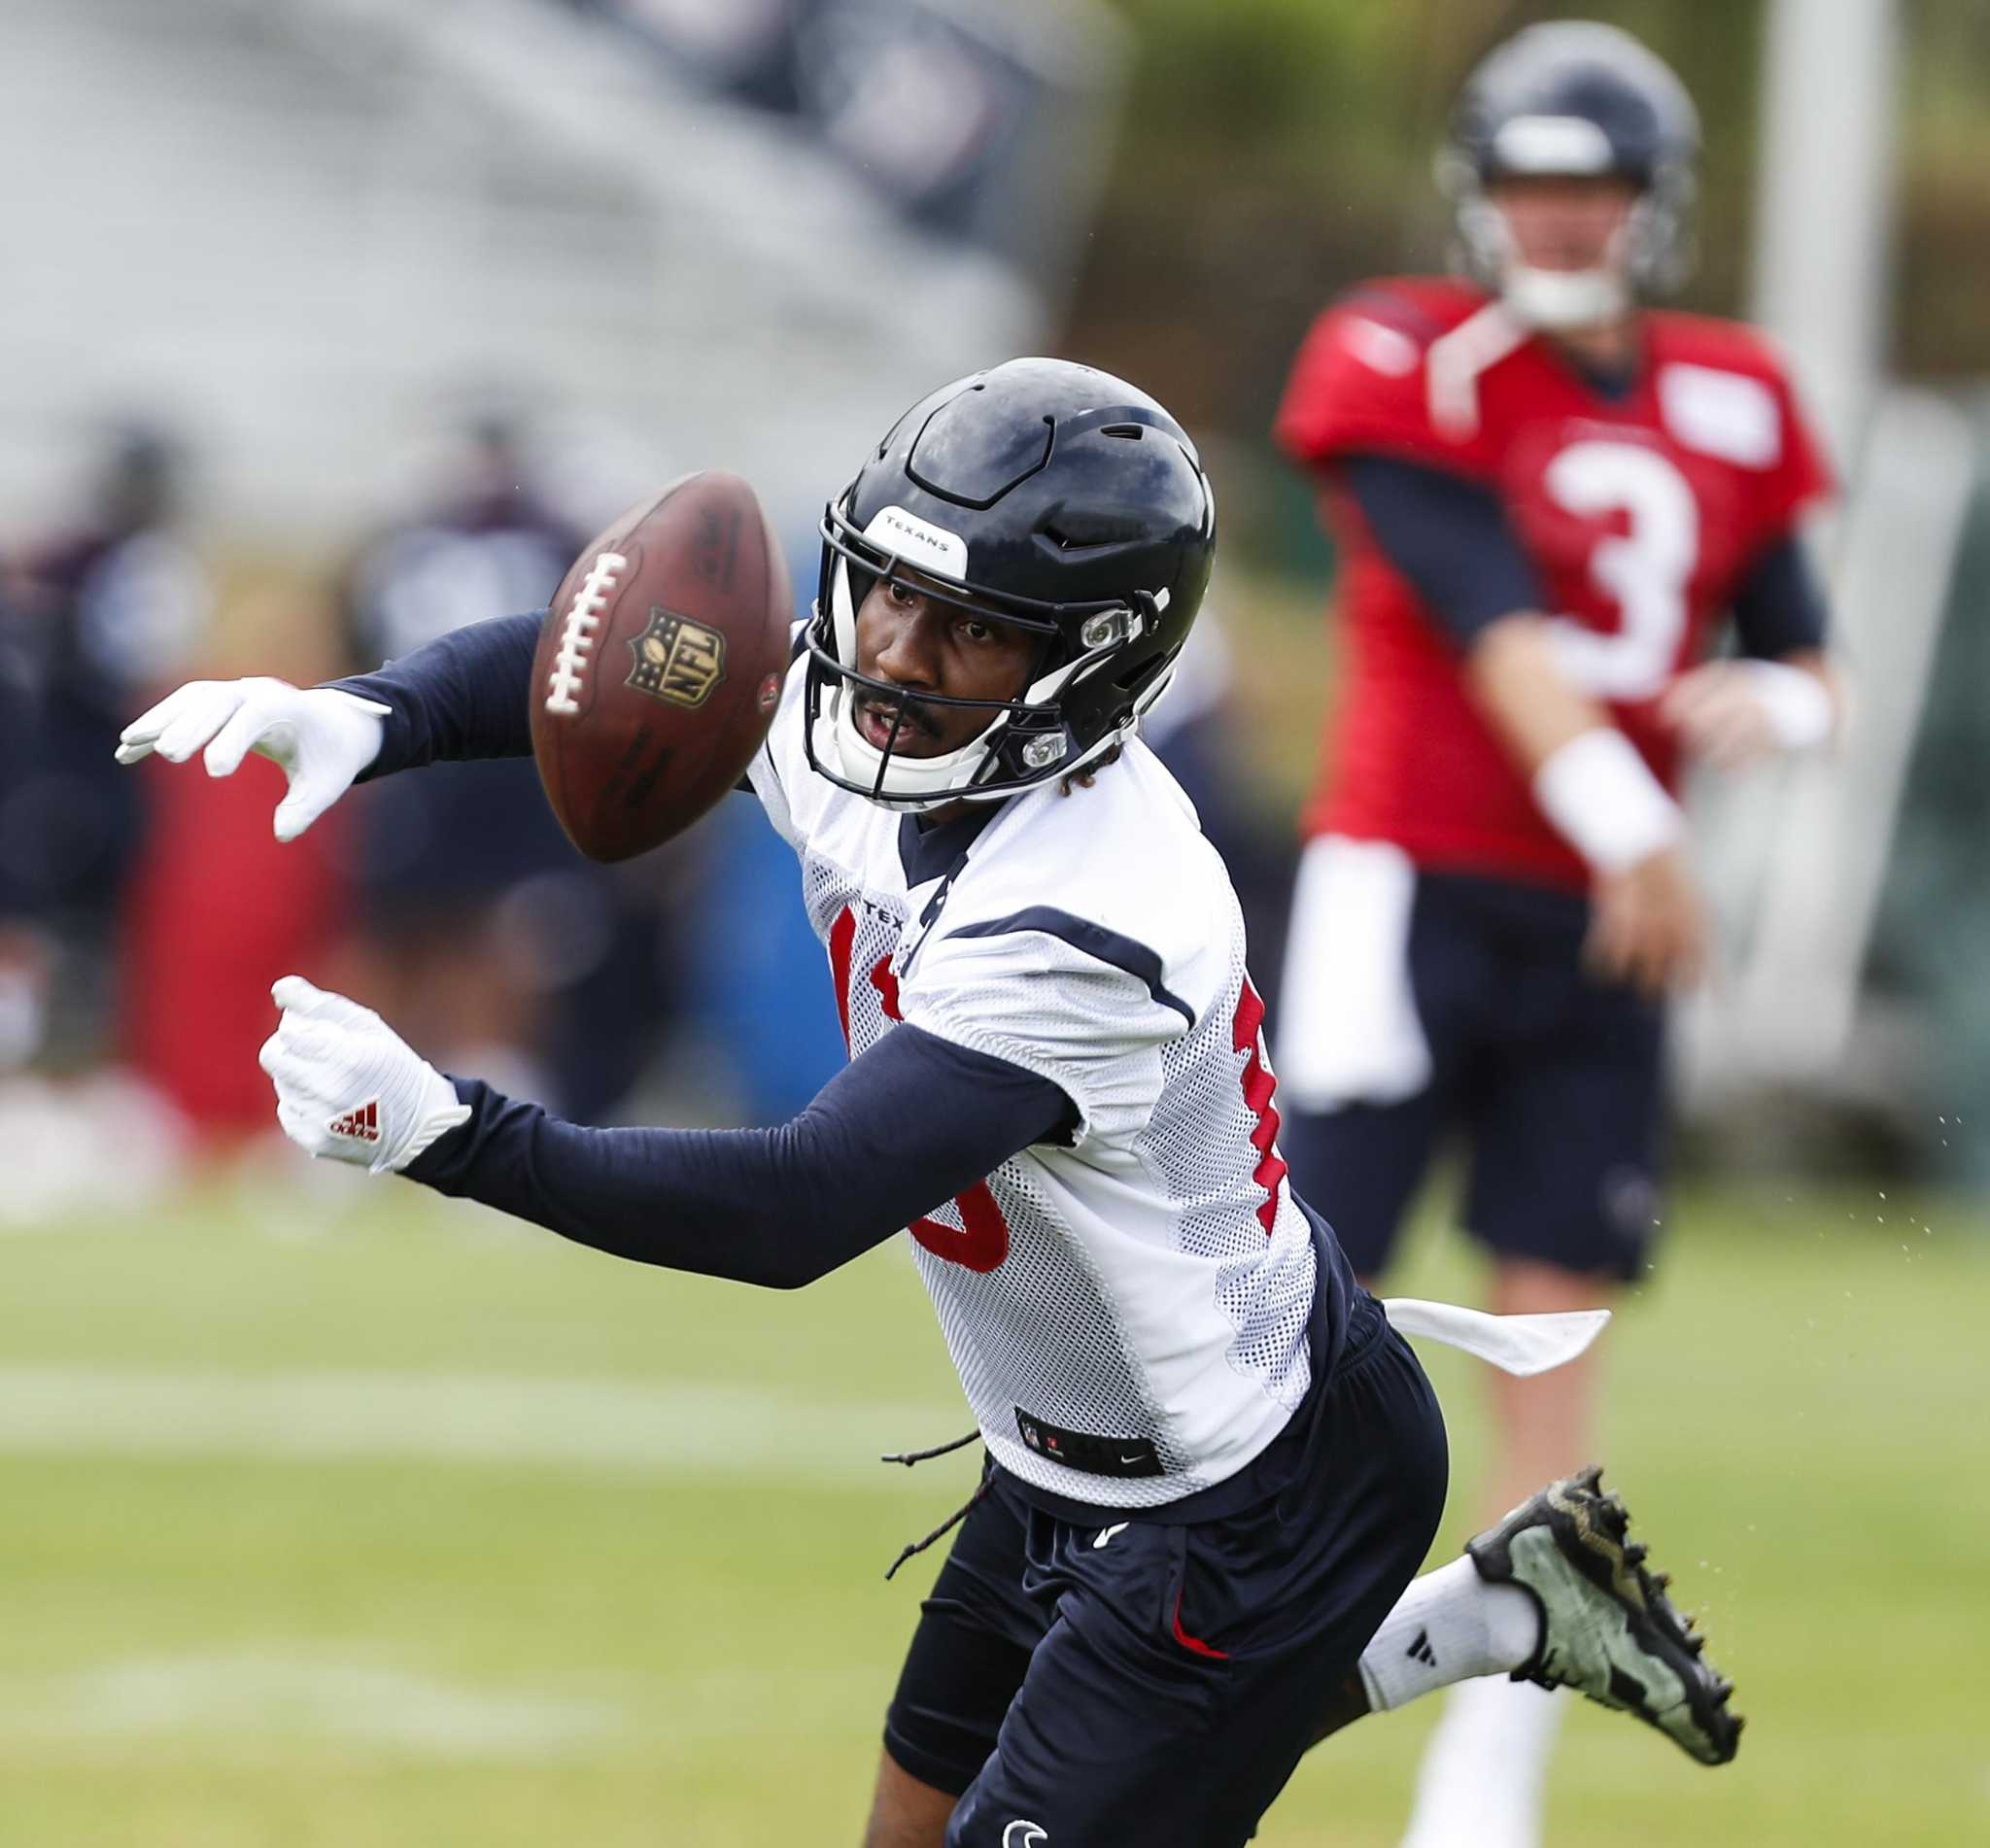 143064124d6 Texans' Braxton Miller is finally catching on as a receiver ...